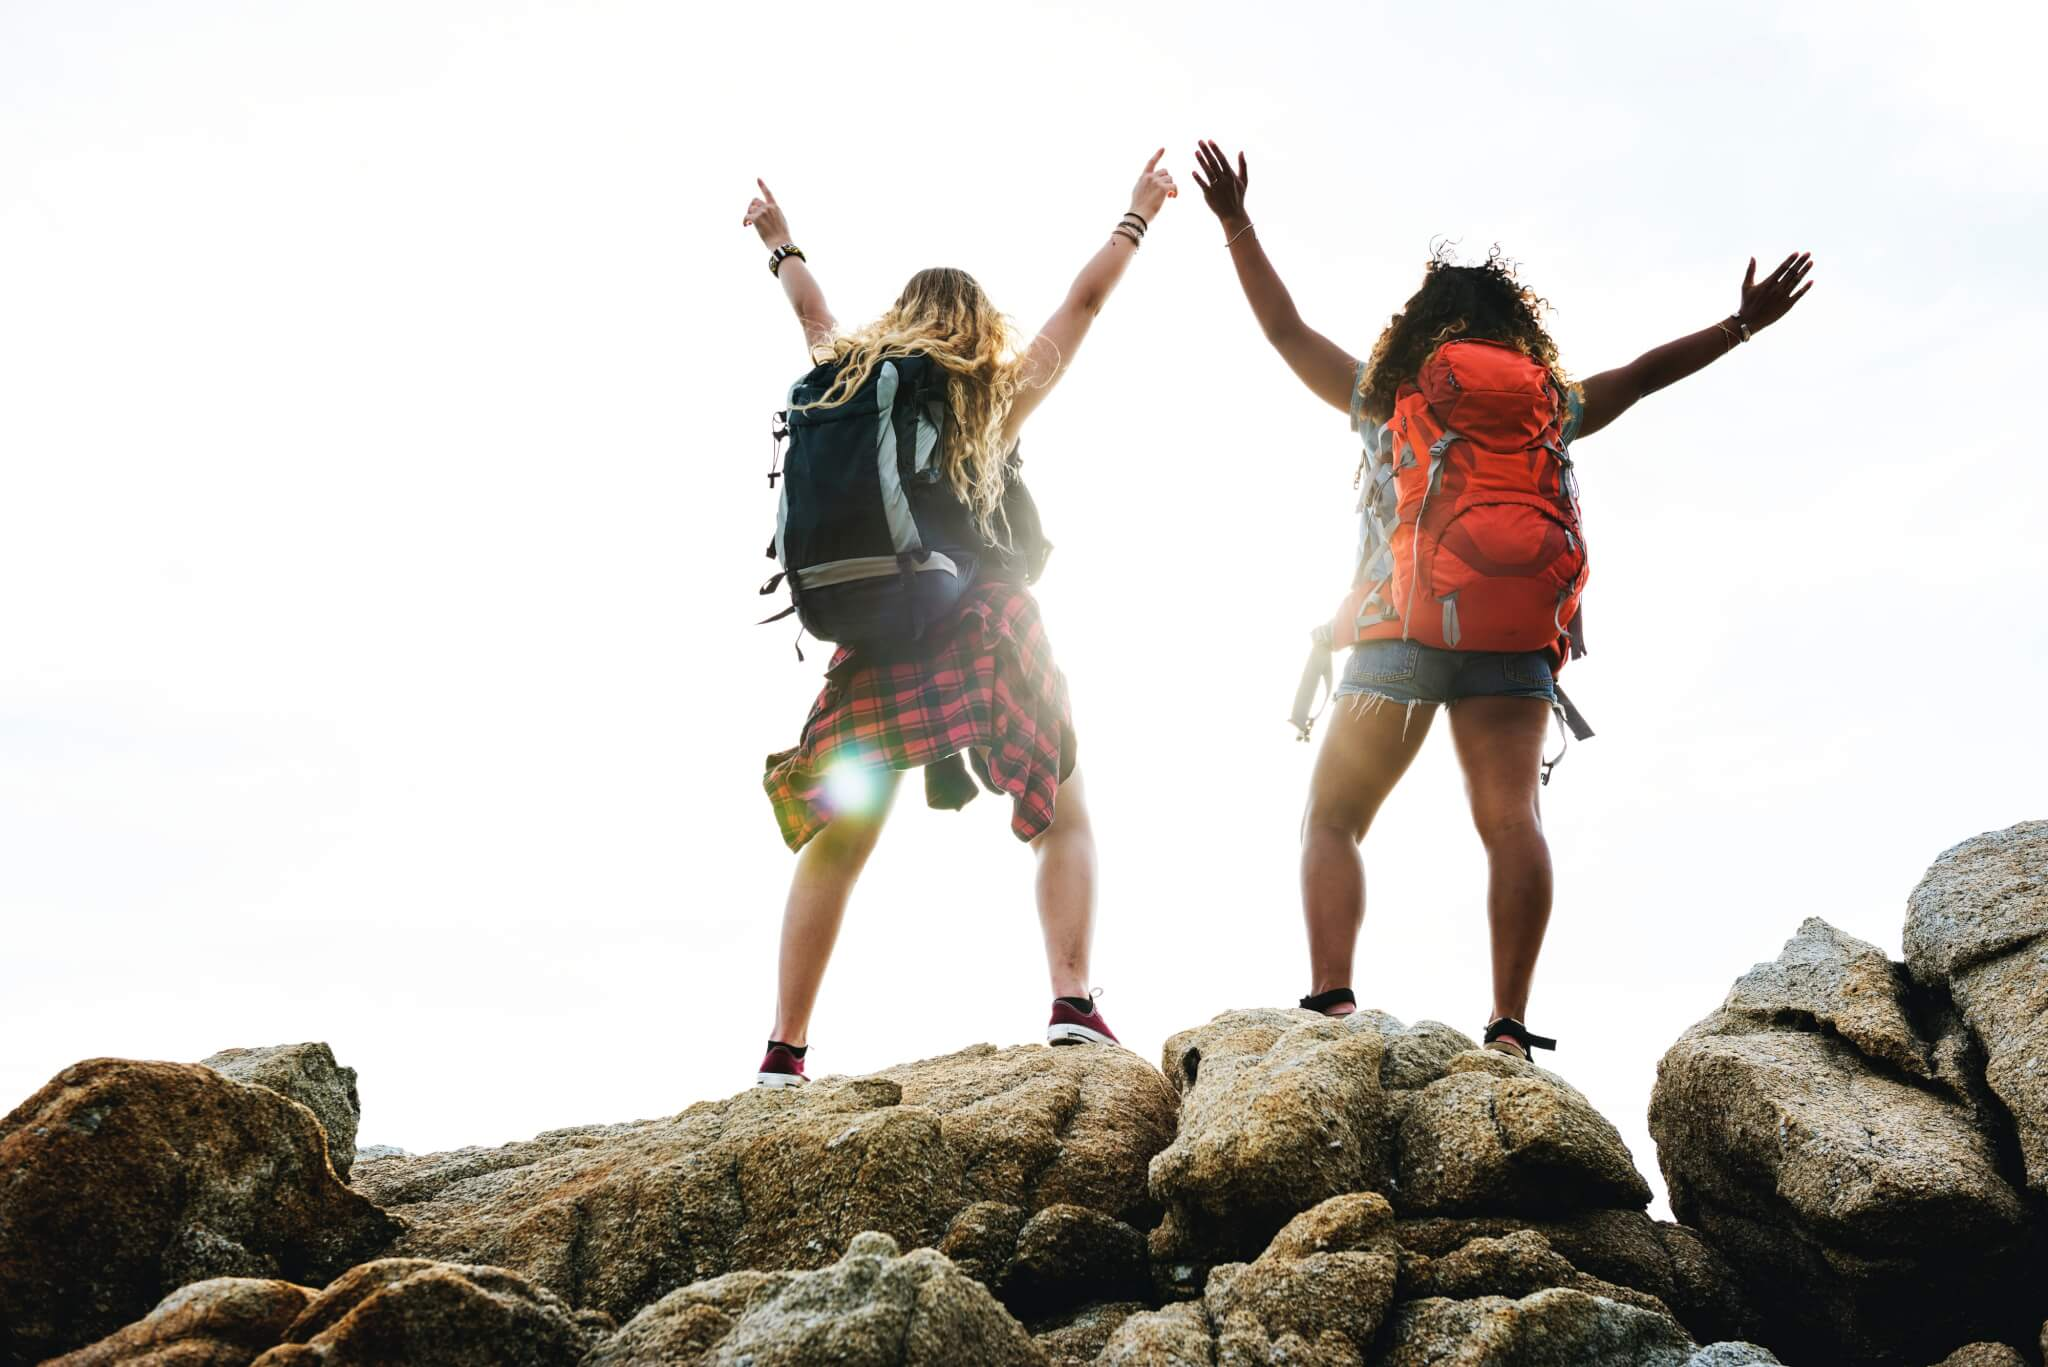 Two women on a hill with travel backpacks on.